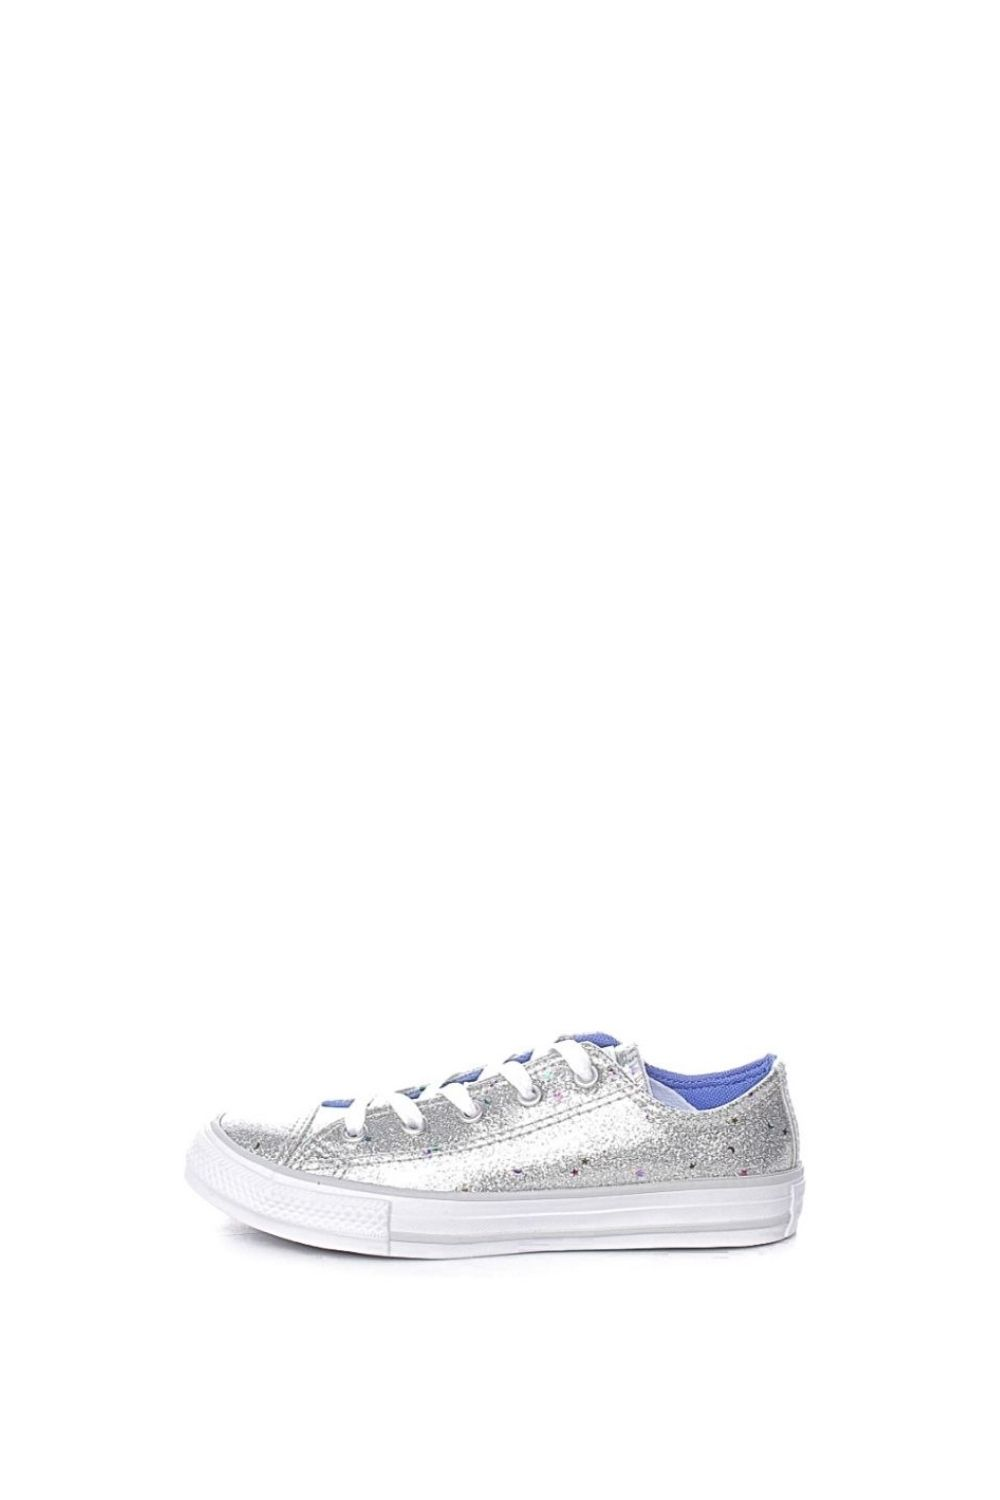 CONVERSE – Παιδικά sneakers CONVERSE CHUCK TAYLOR ALL STAR ασημί